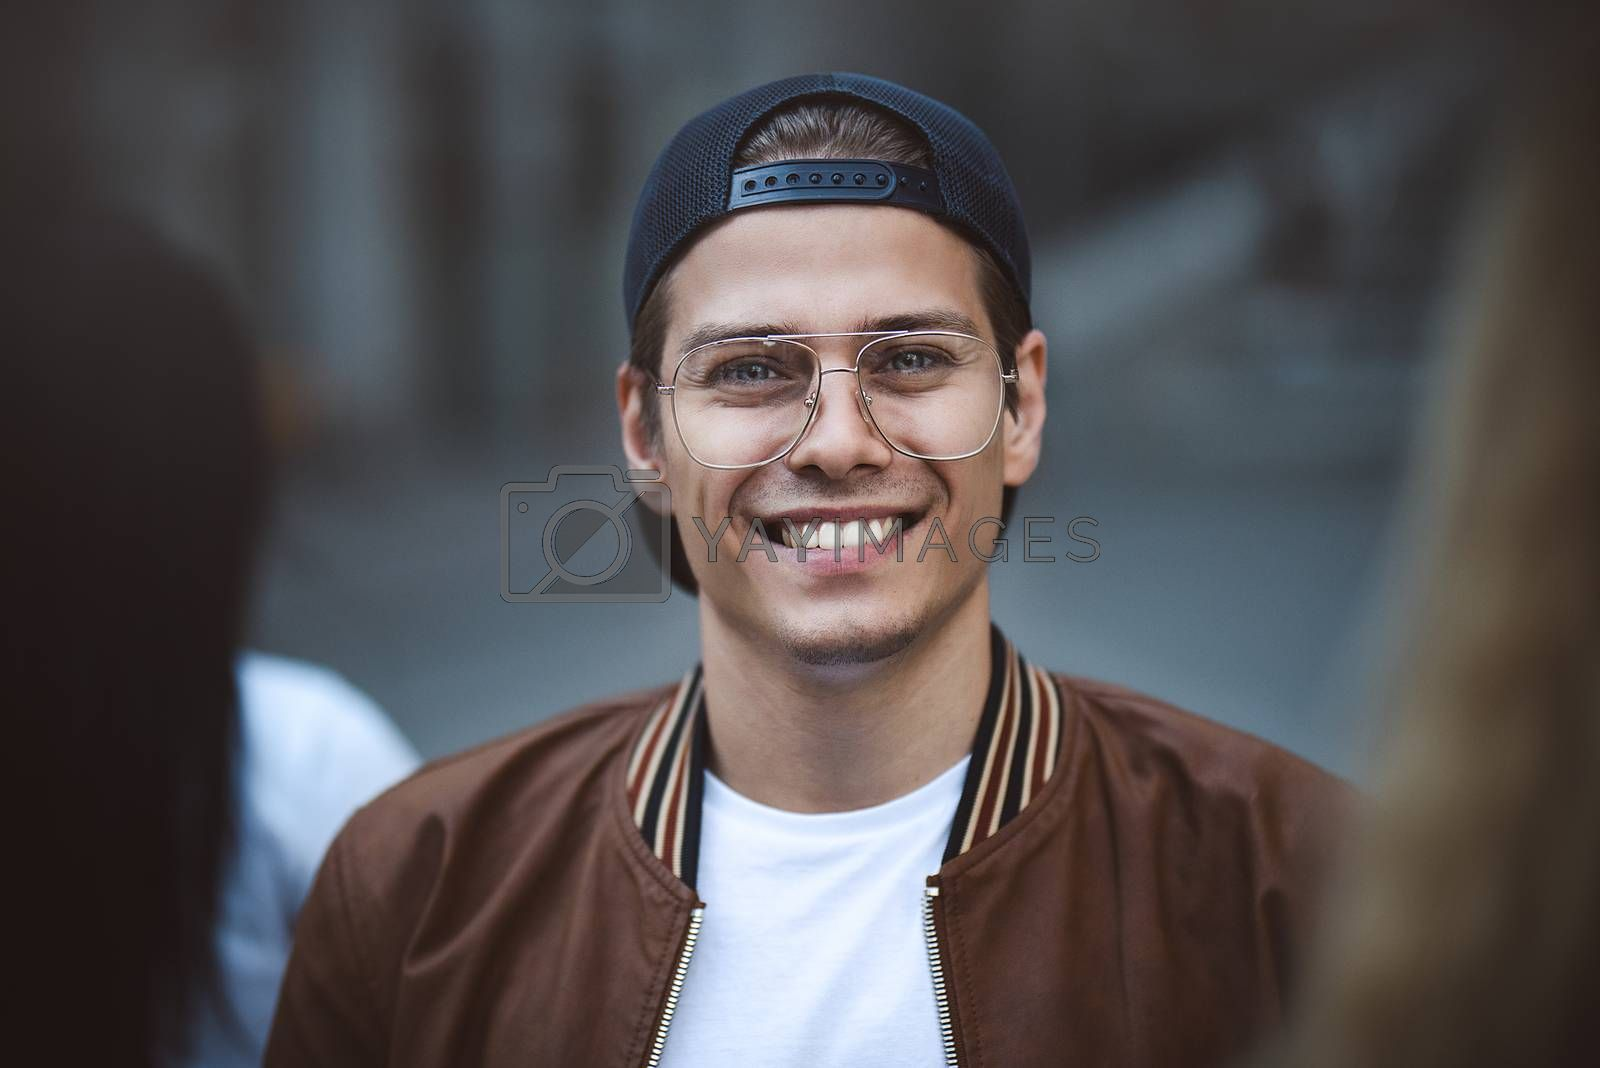 Royalty free image of Young happy man posing on a crowded street by Nickstock